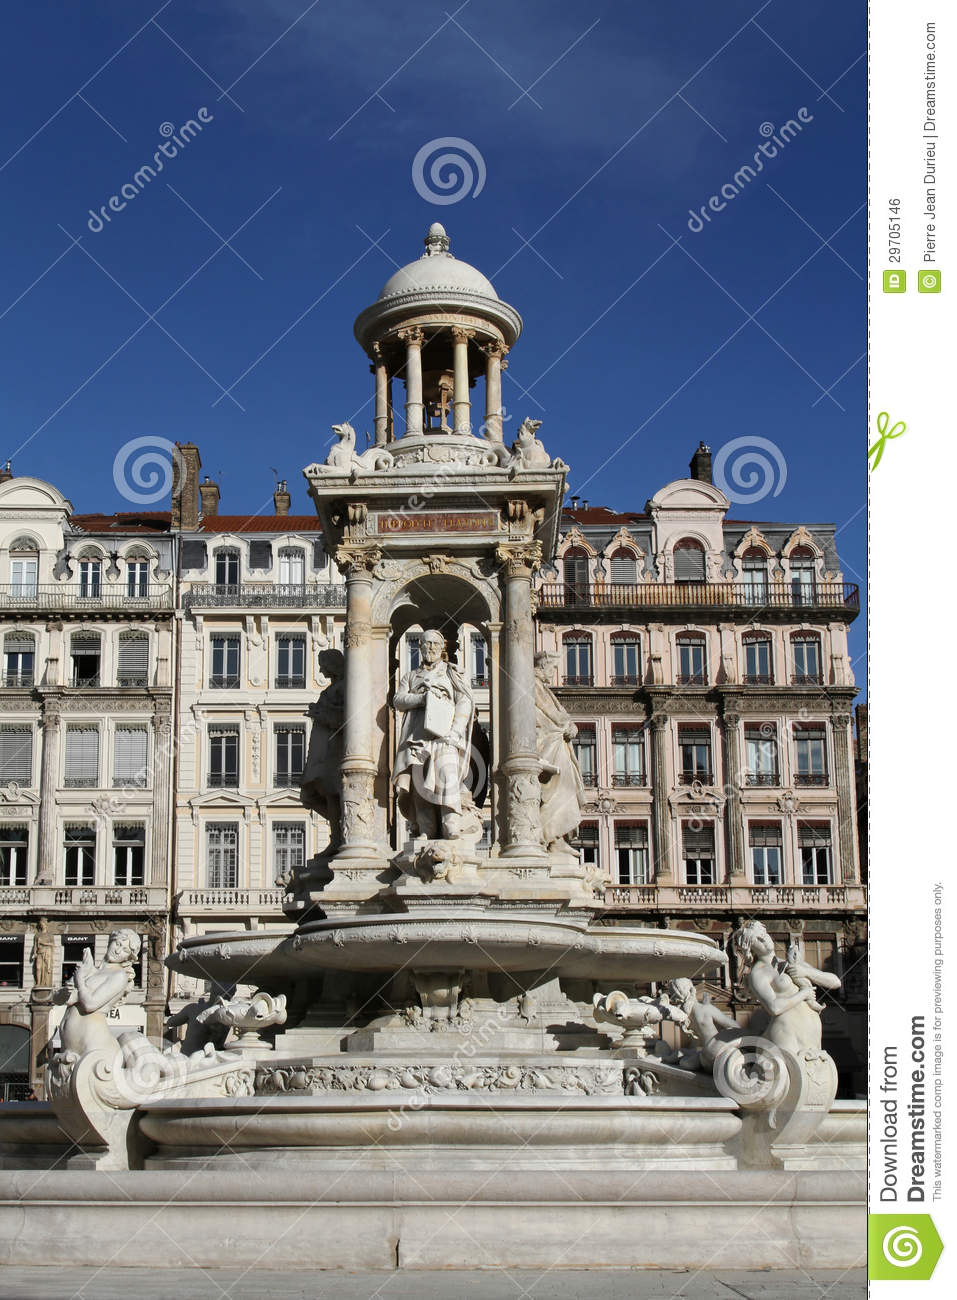 Fountain in place des jacobins royalty free stock image - Place des jacobins lyon ...